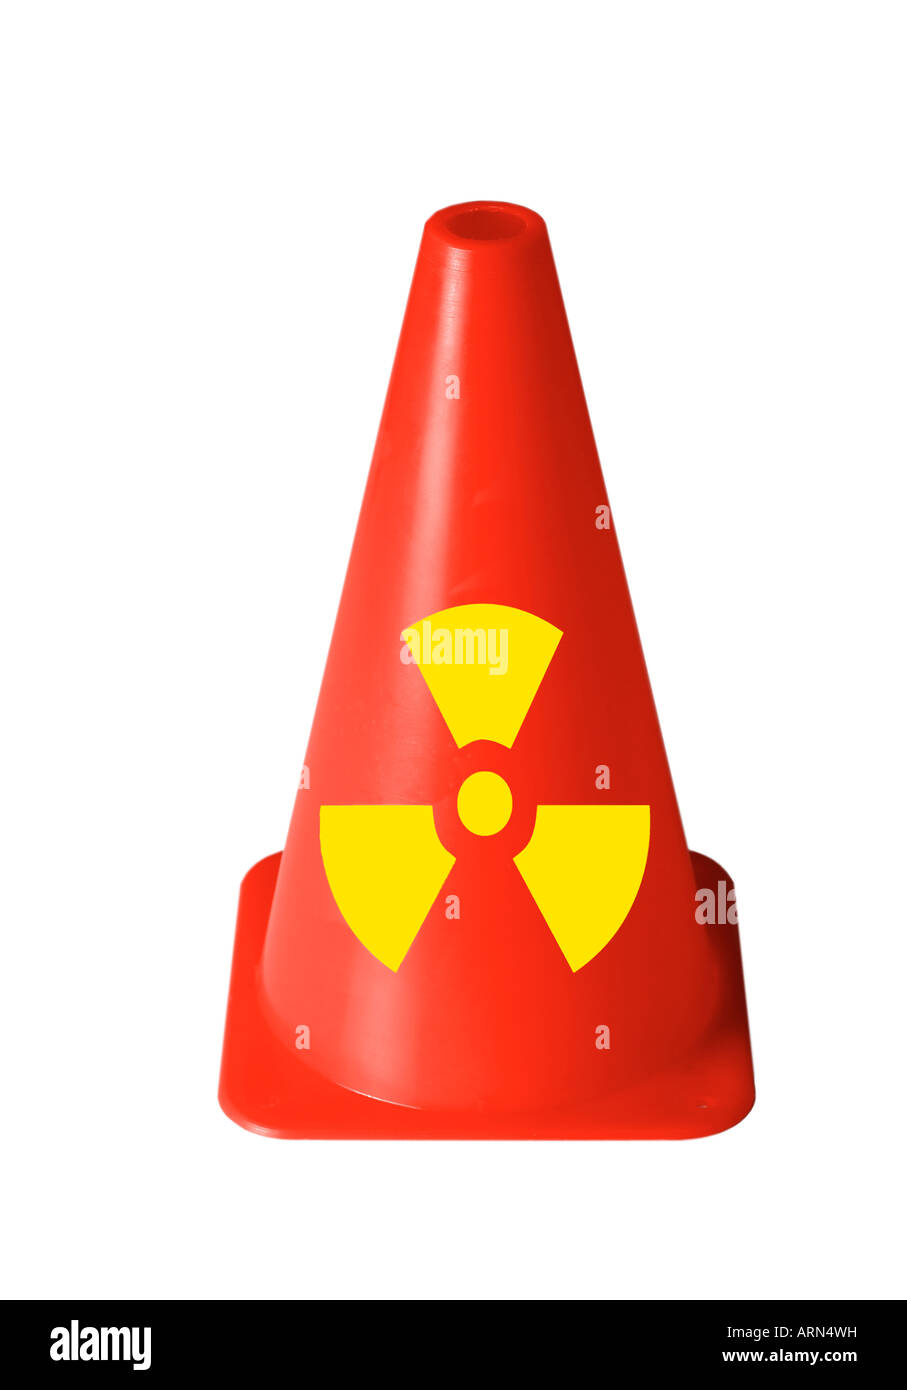 bright red safety cone with radiation sign printed on against white cutout - Stock Image